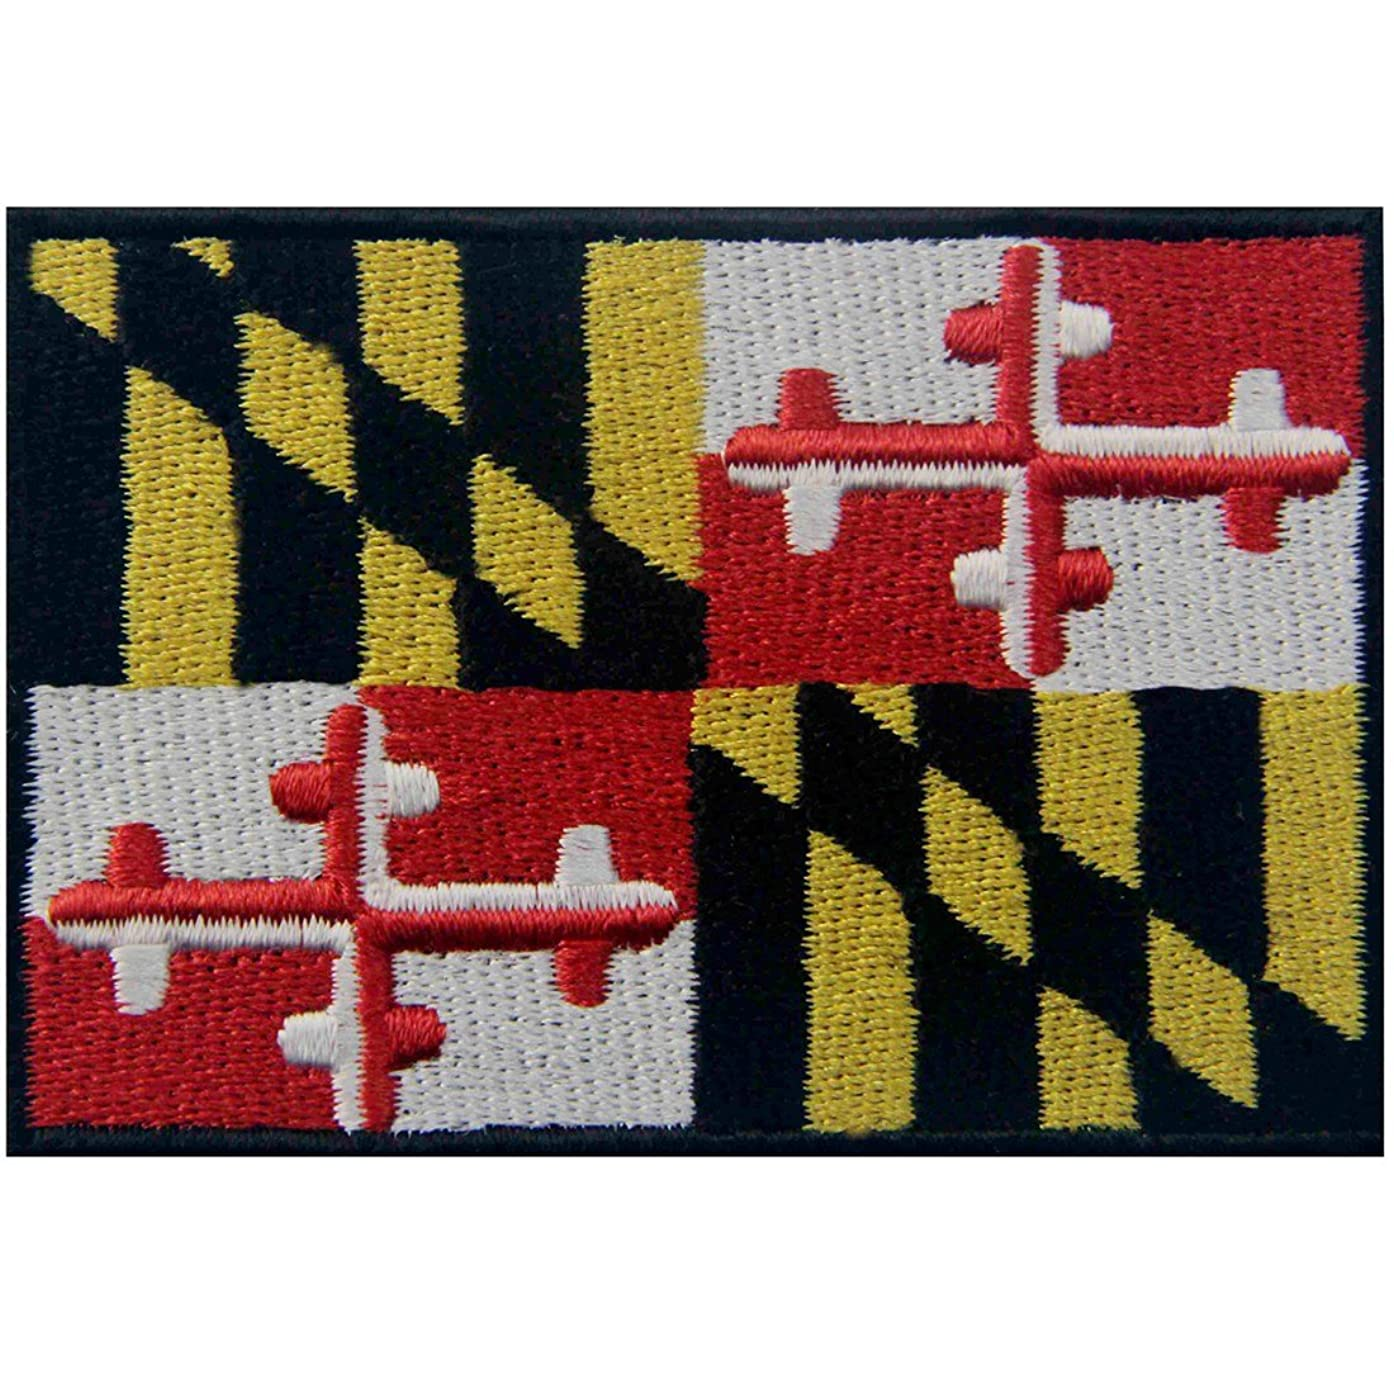 Maryland State Flag Embroidered MD Patch Iron On / Sew On Emblem